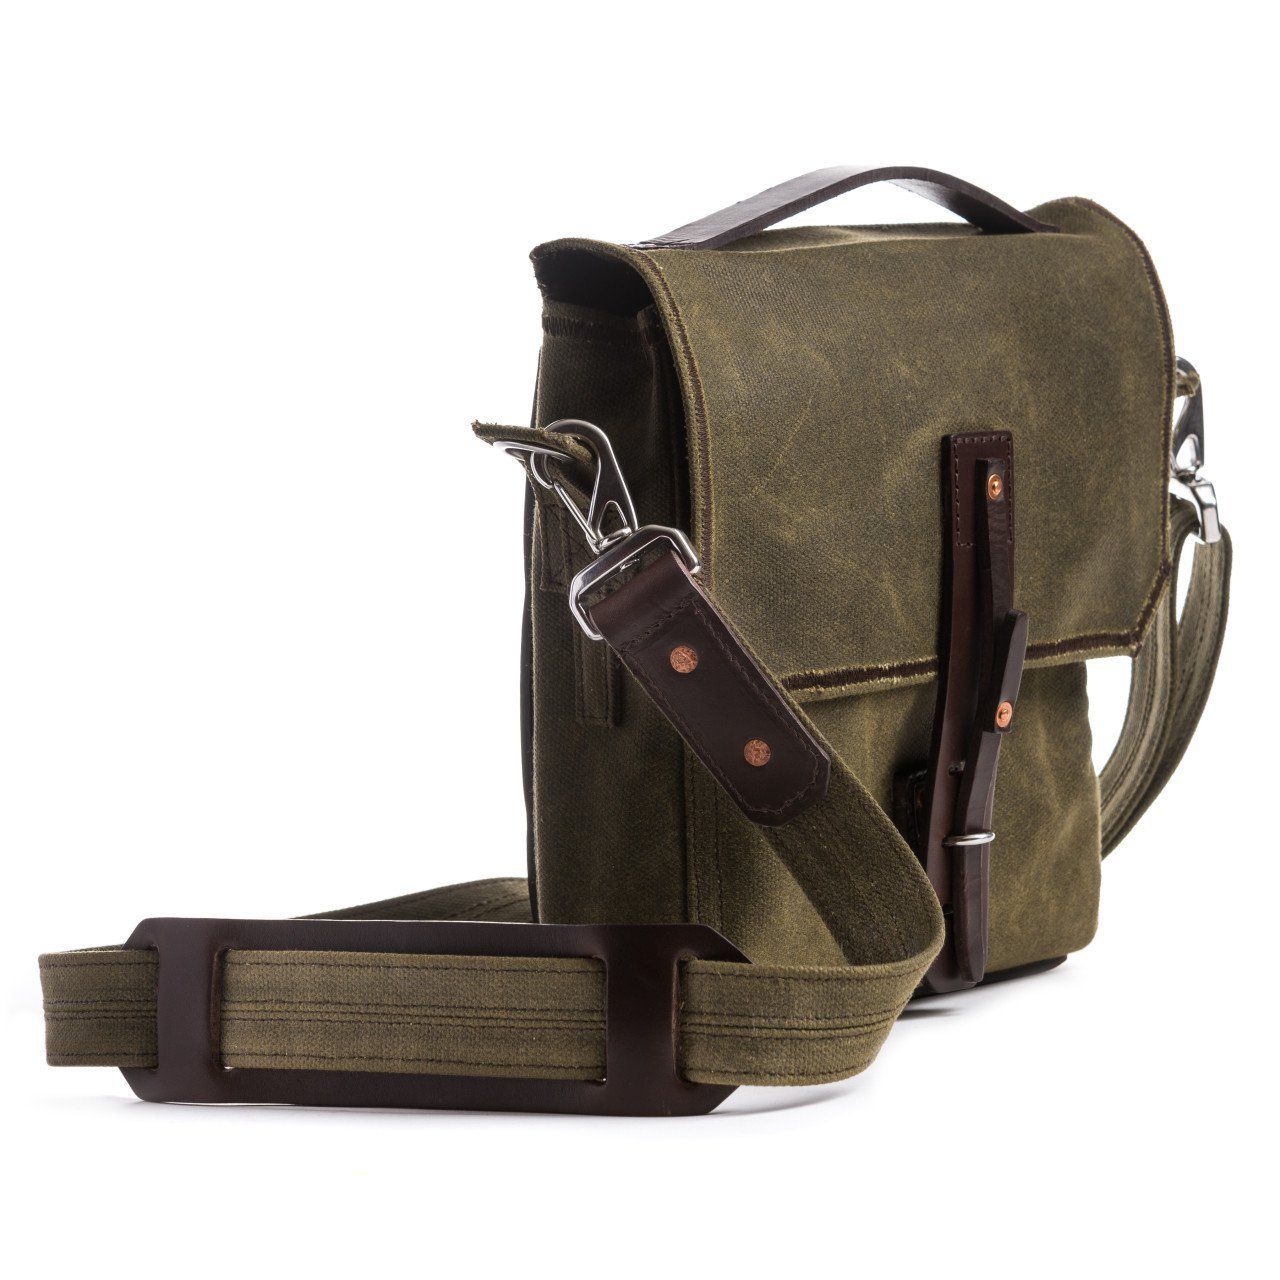 Saddleback Leather Canvas Indiana Gear Bag - Scottish Waxed Canvas Satchel Bag with 100 Year Warranty